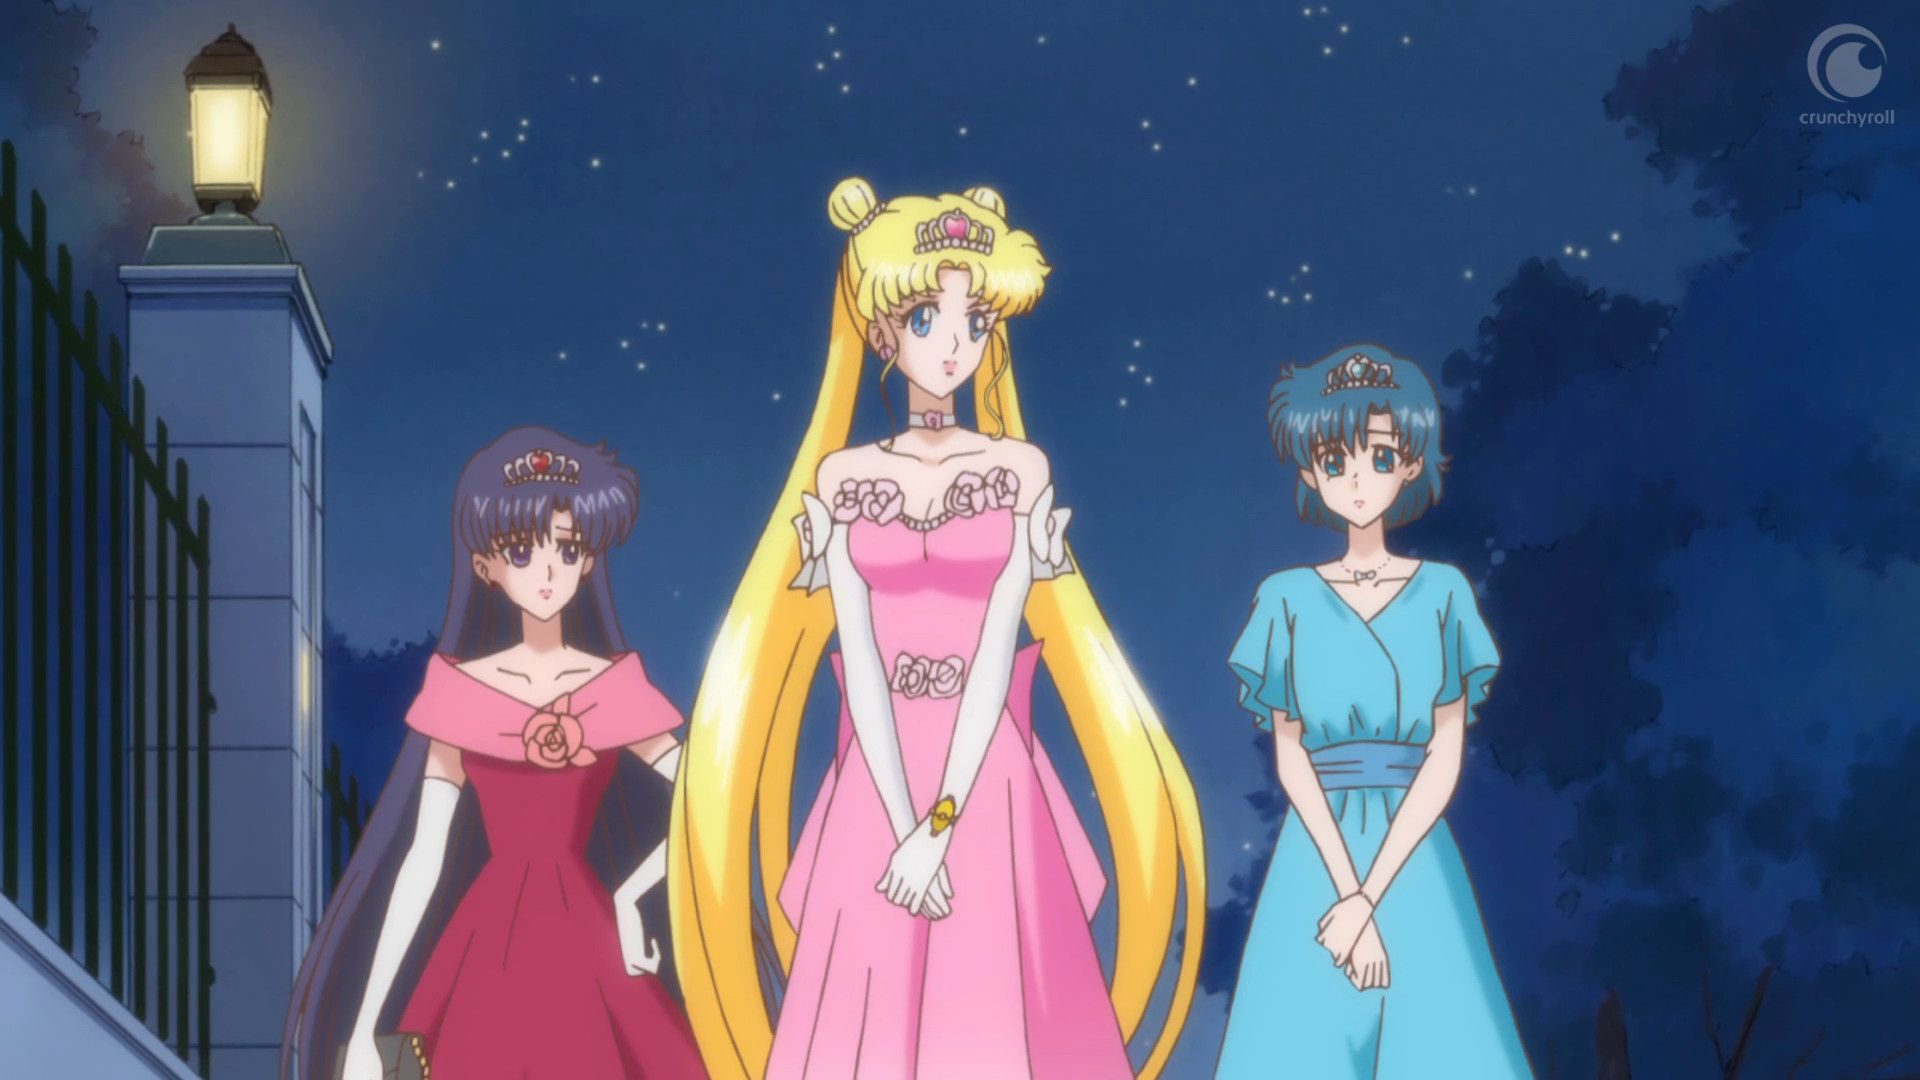 http://vignette3.wikia.nocookie.net/sailormoon/images/7/77/Sailor_moon_crystal_04_rei_usagi_and_ami_as_princesses.jpg/revision/latest?cb=20140818191116